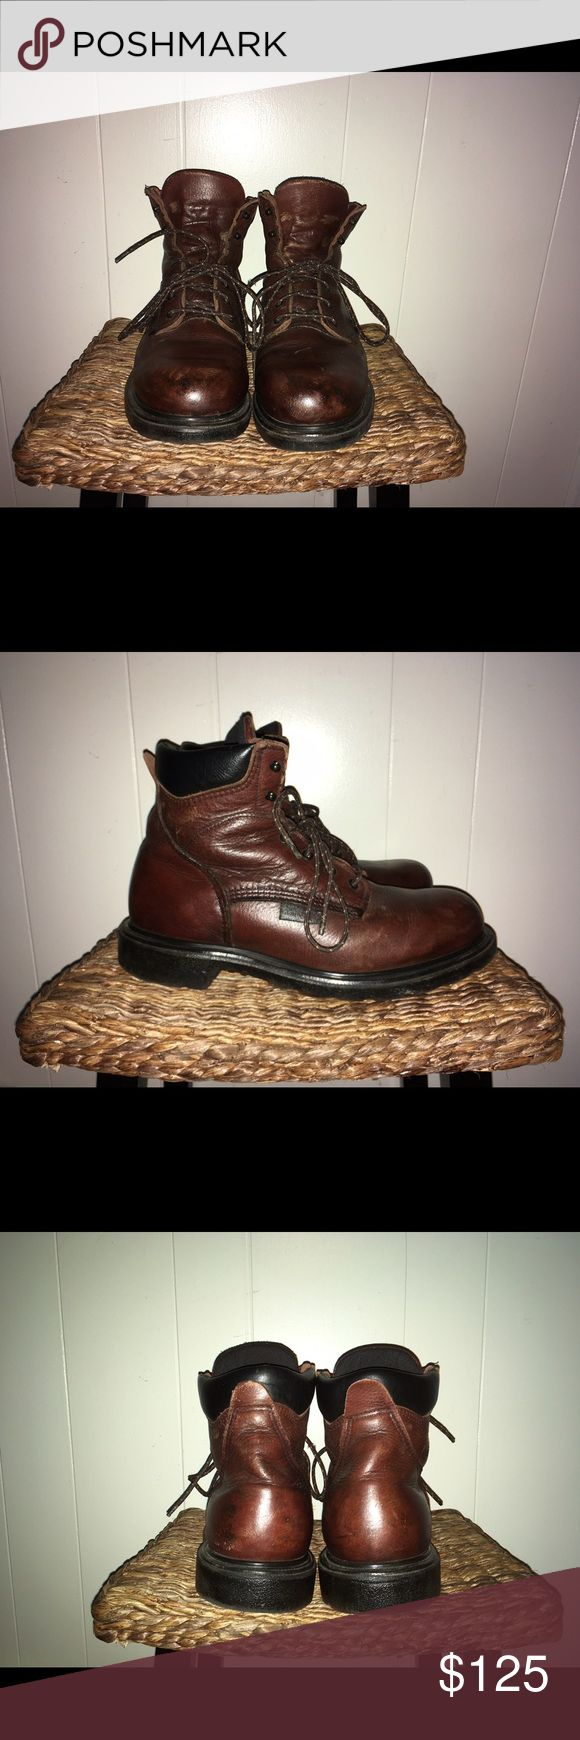 Men's Red Wing Boots- worn once These handsome boots are perfect for construction work, boat work, in the rain or in the snow. They have been worn one time. They are in perfect condition at a fantastic price! Red Wing Shoes Shoes Boots